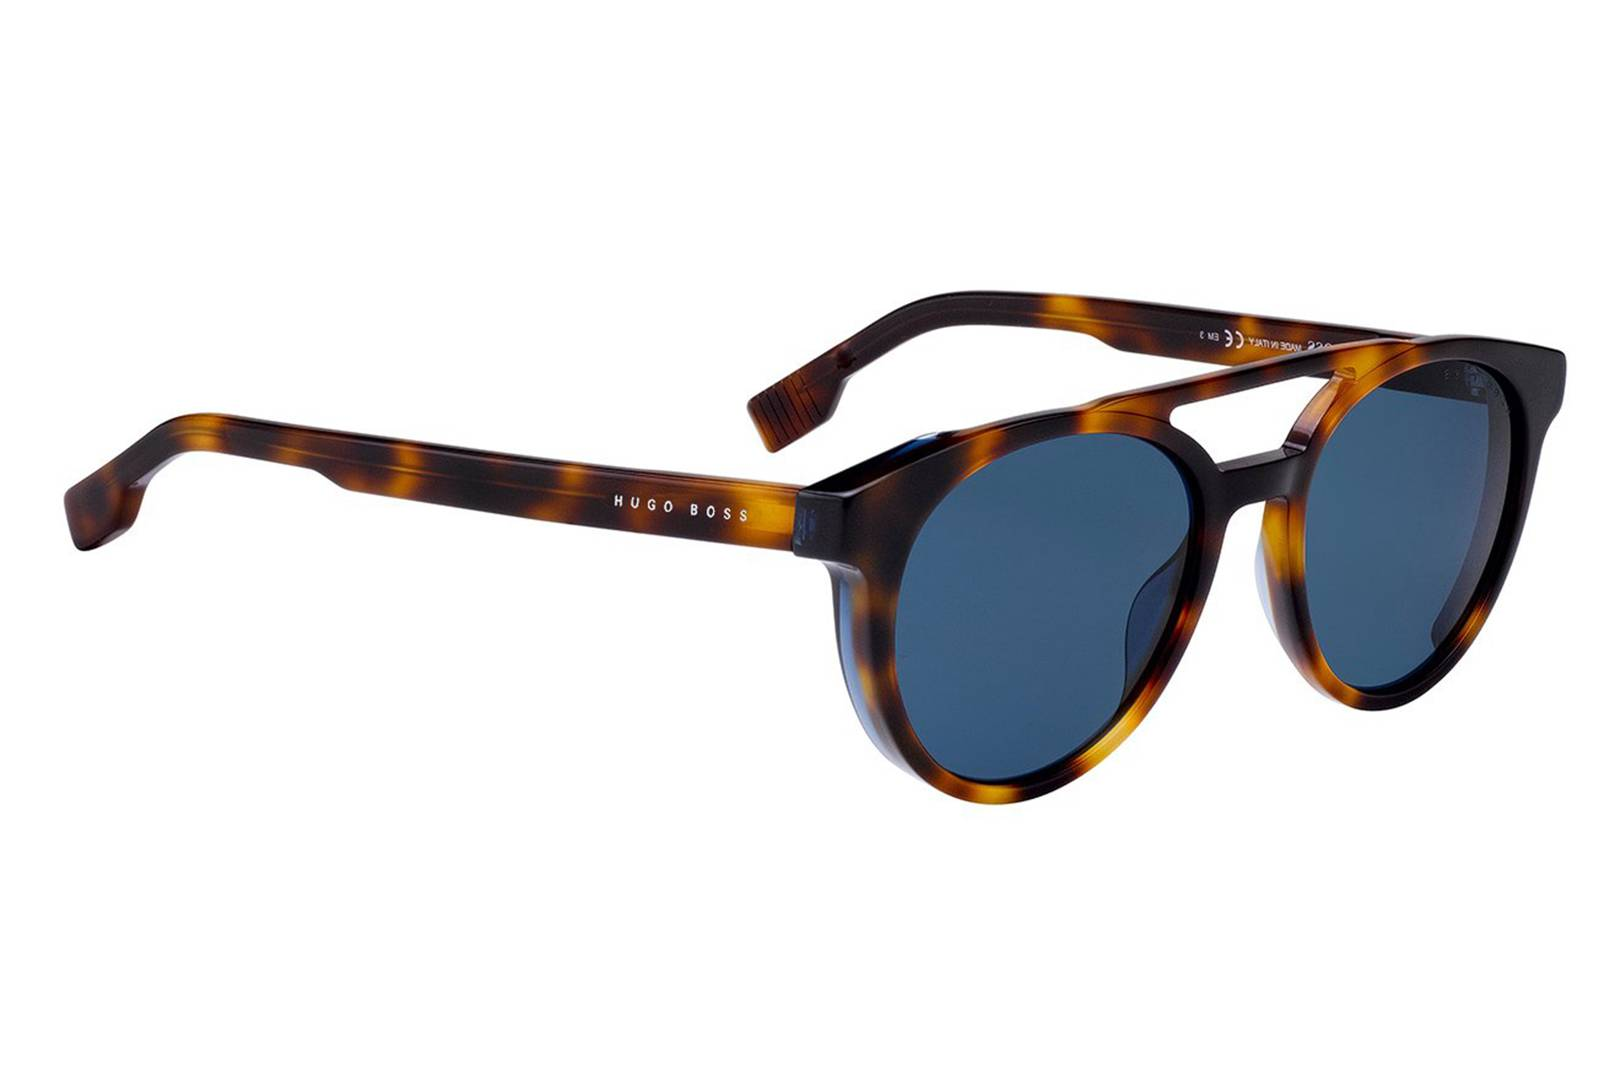 8abd44d14f2 Best sunglasses 2019  the most stylish new shades for men